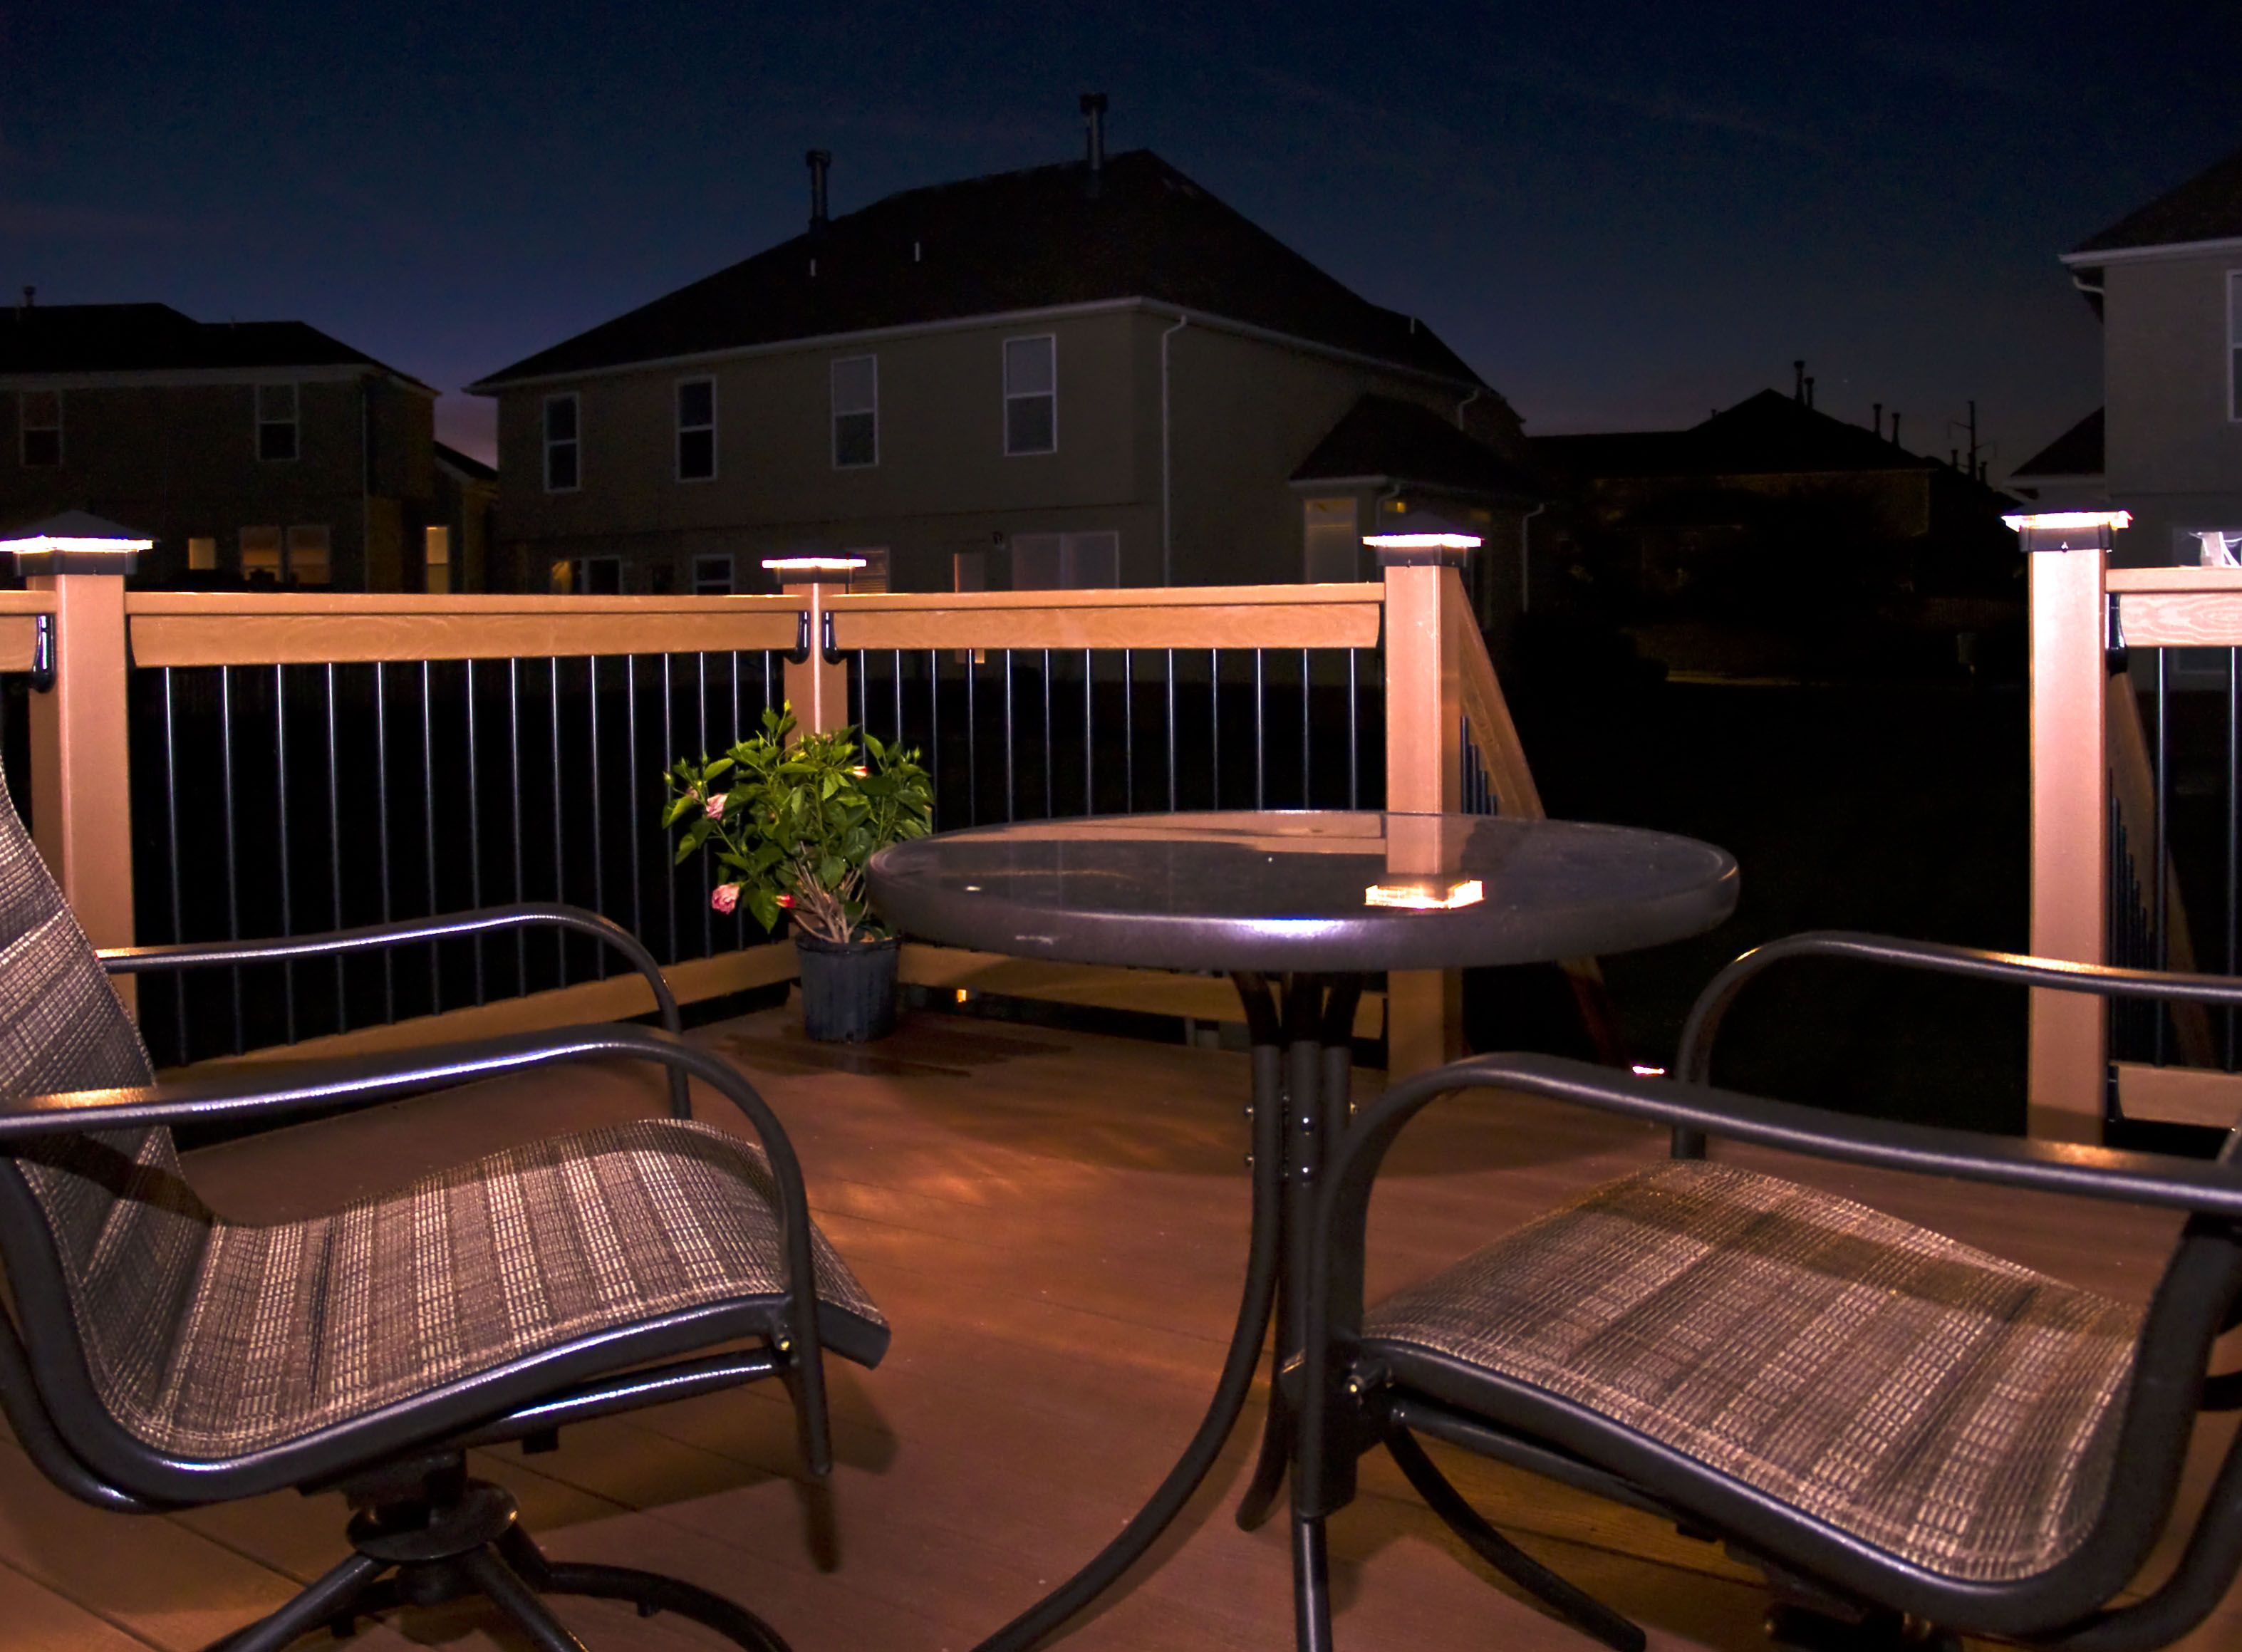 EverGrain Deck (Redwood) with Moonlight Decks post lights in Olathe, KS